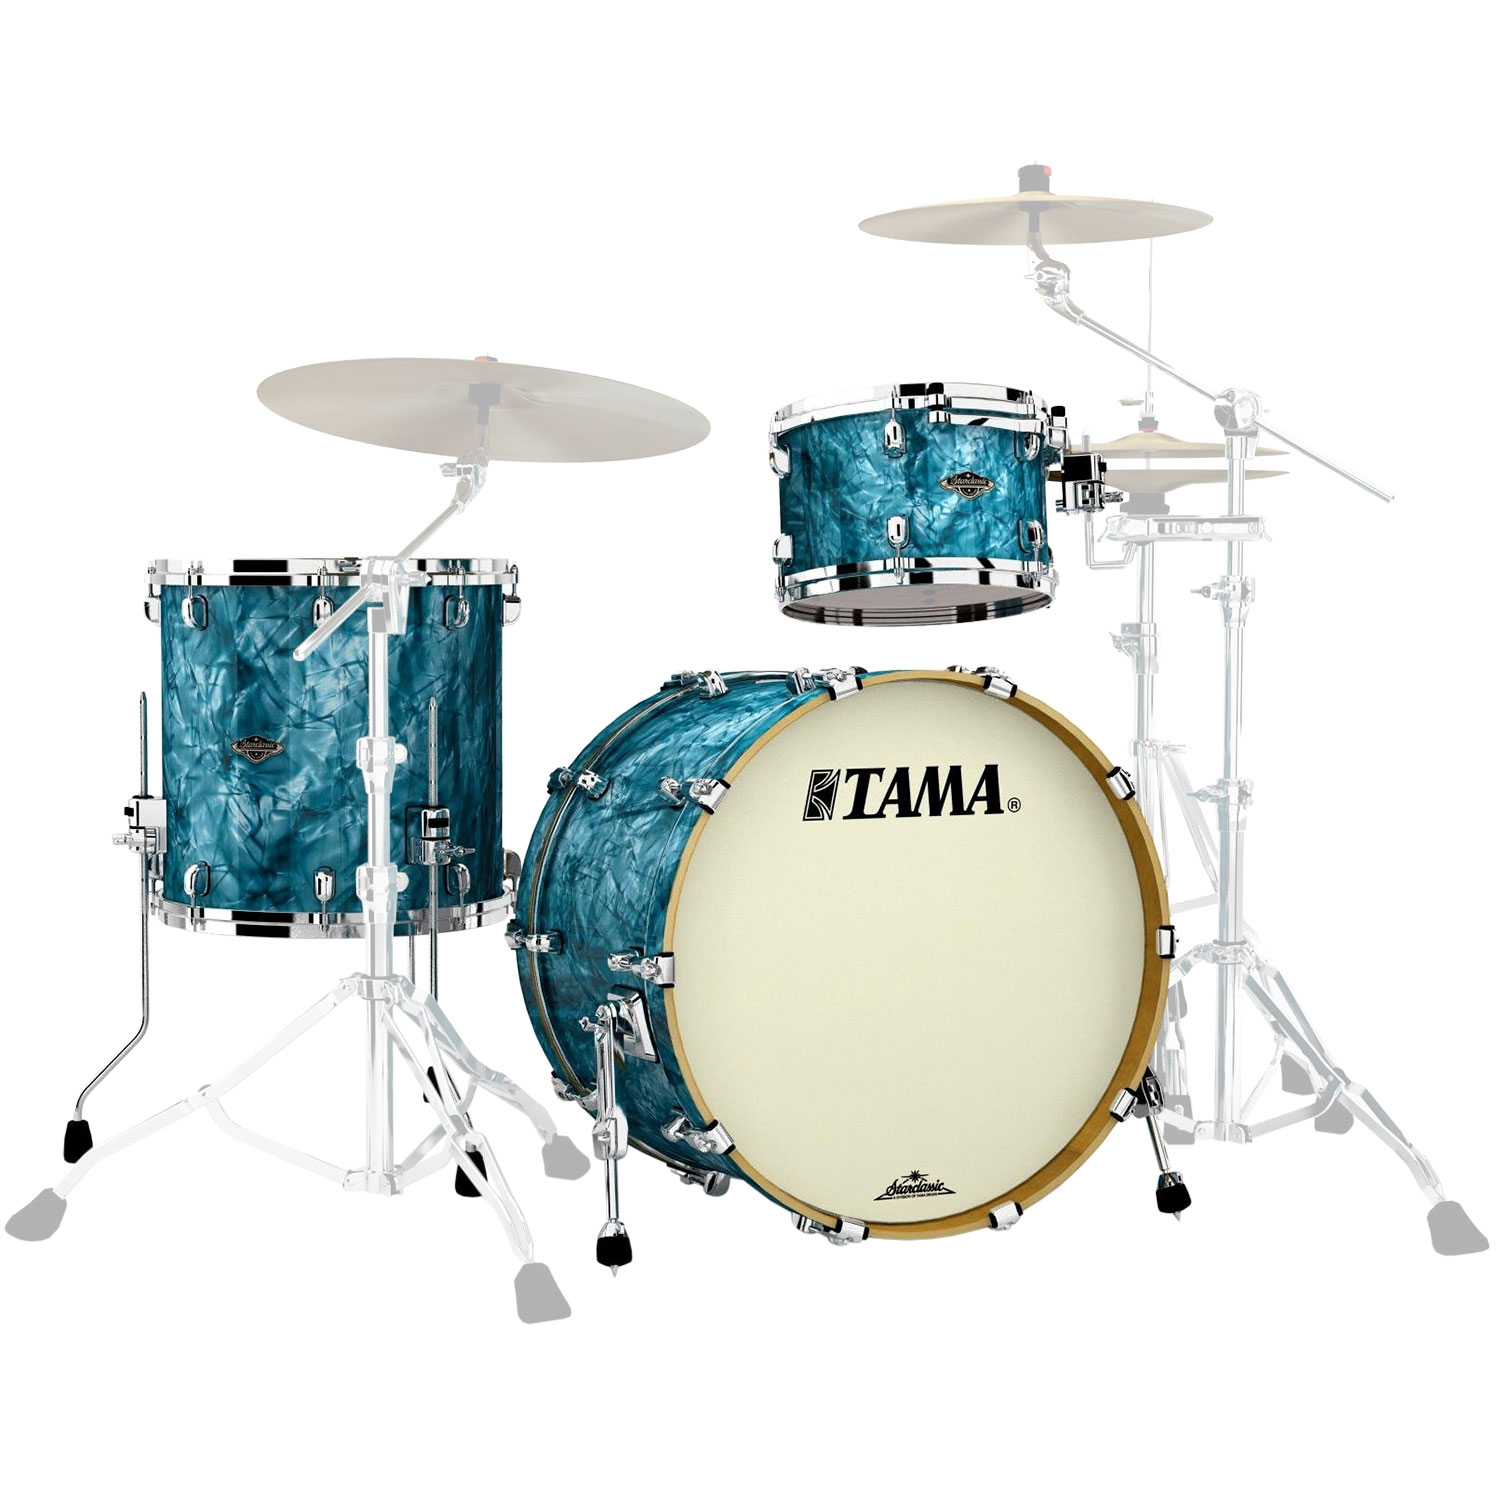 "Tama Starclassic Walnut/Birch 3-Piece Drum Set Shell Pack (22"" Bass, 12/16"" Toms)"